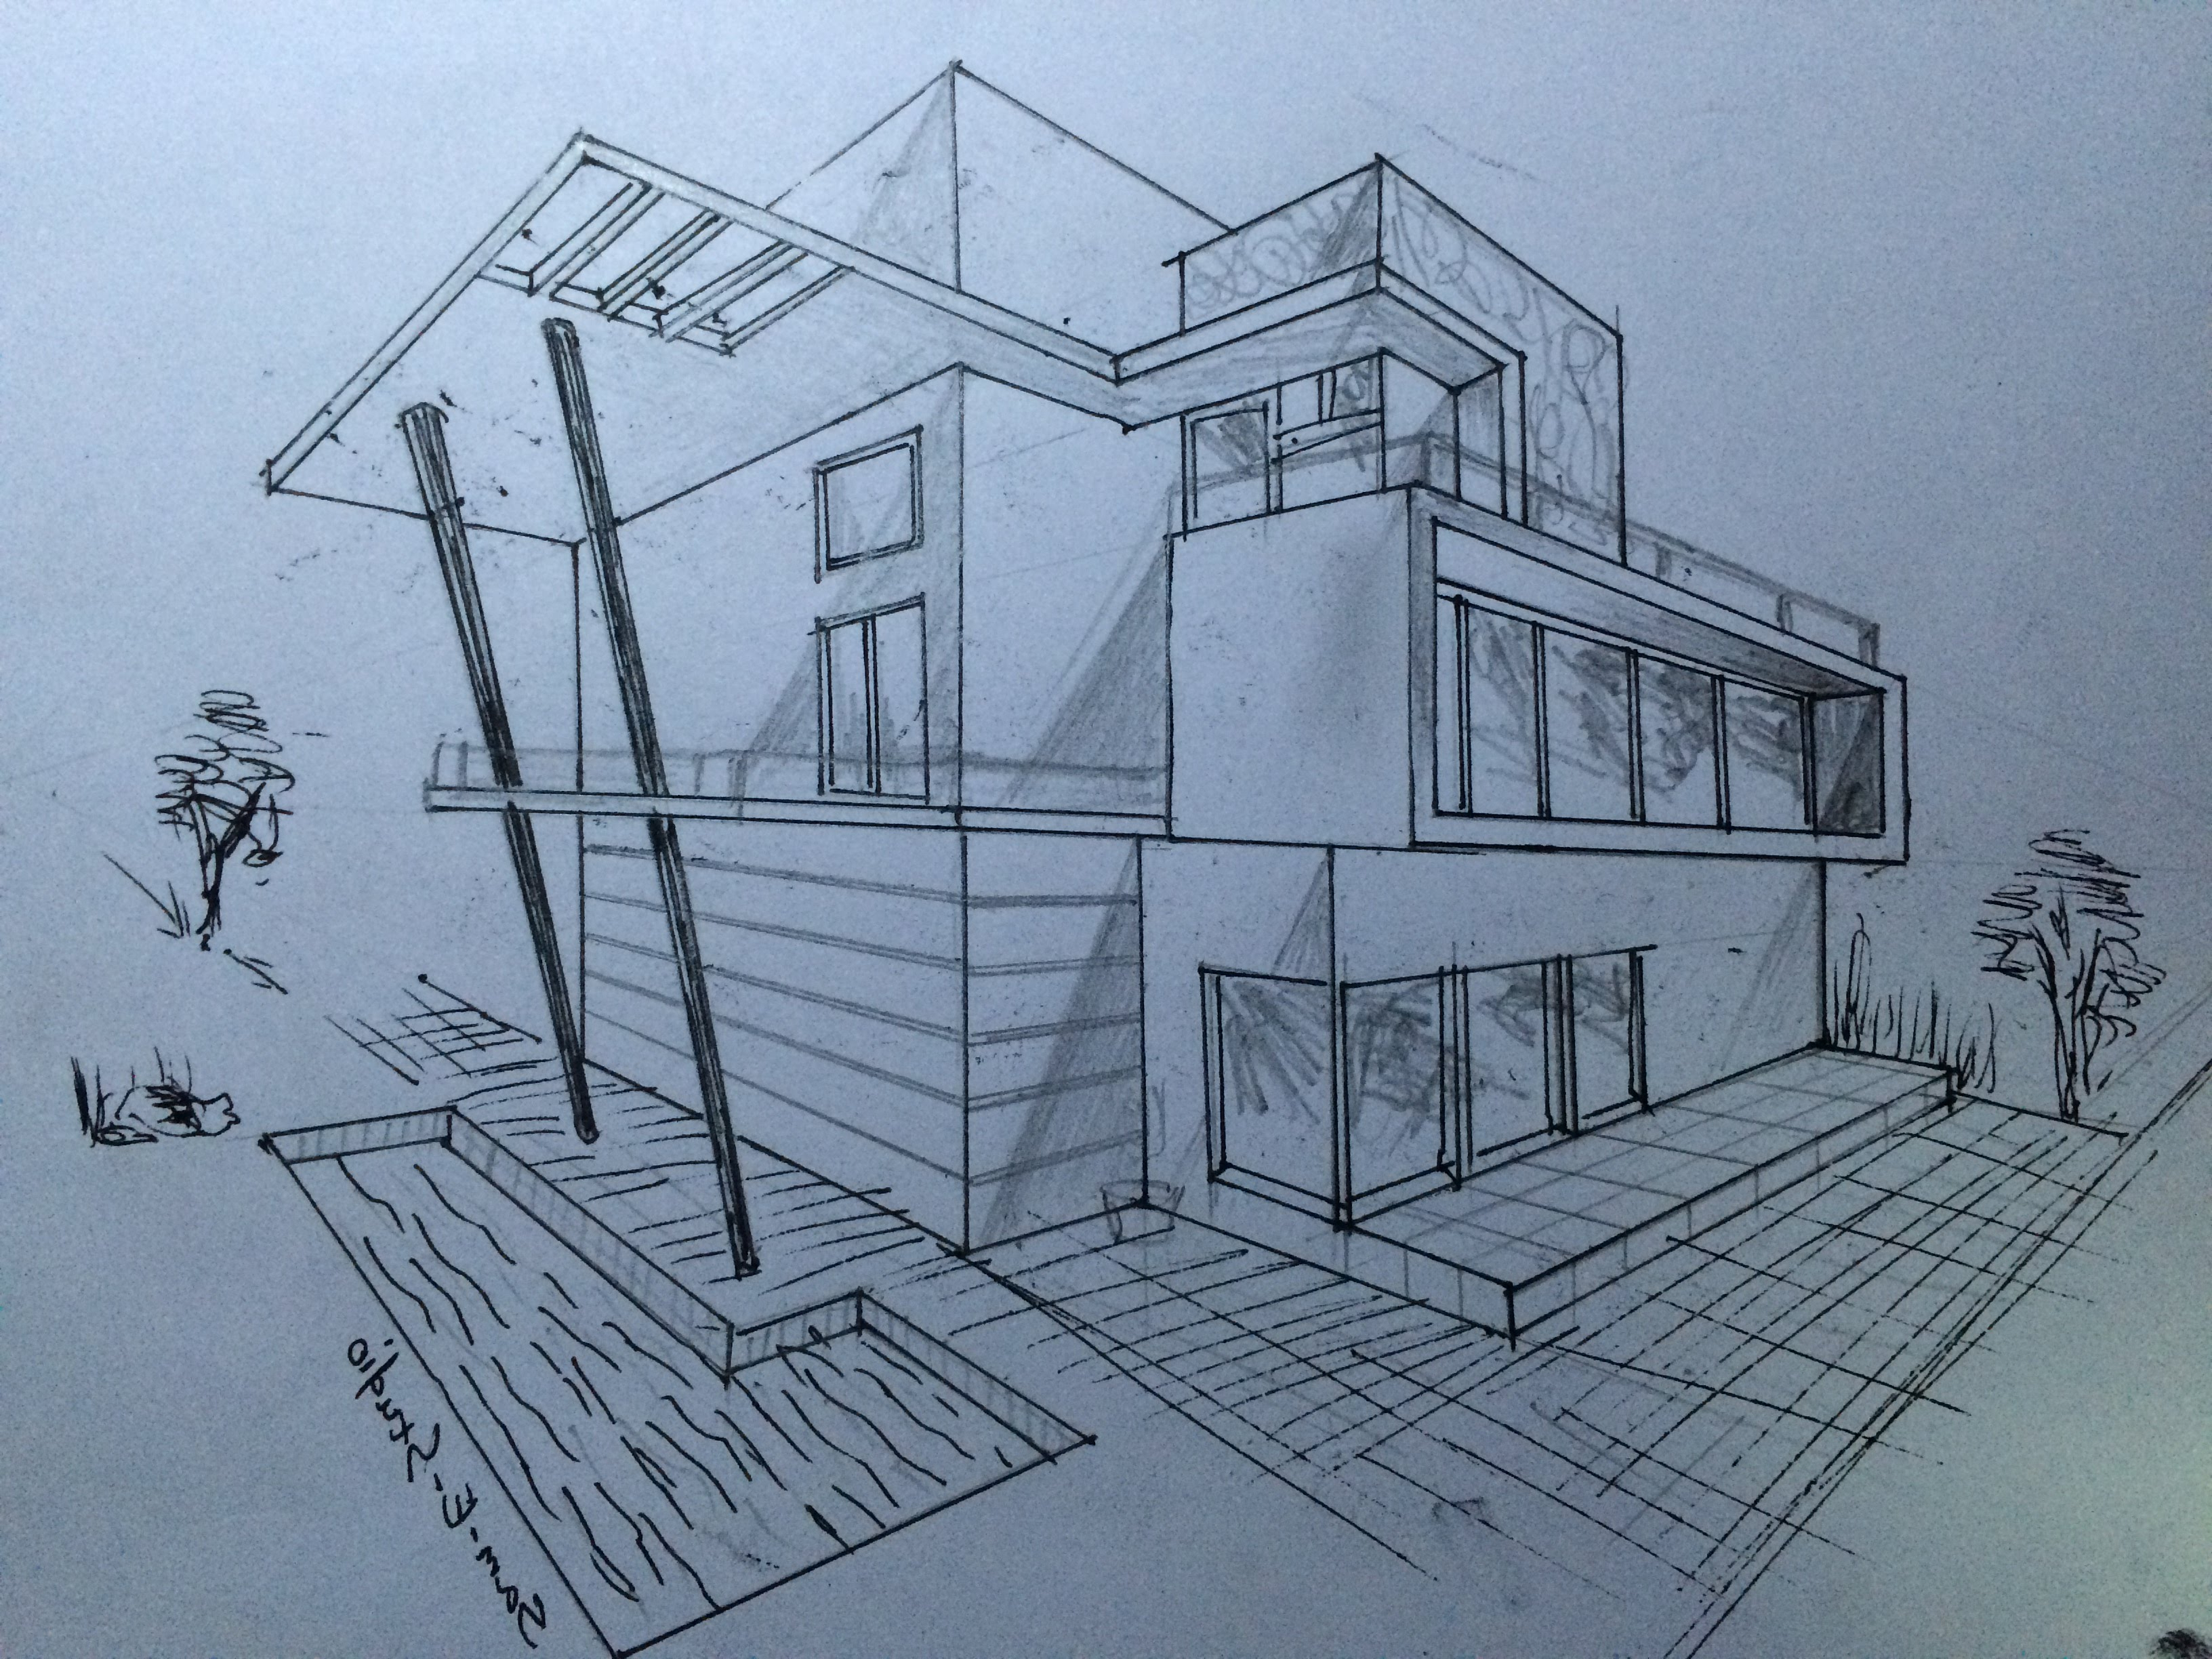 3264x2448 3D Perspective House Drawing Pencil Architecture Modern